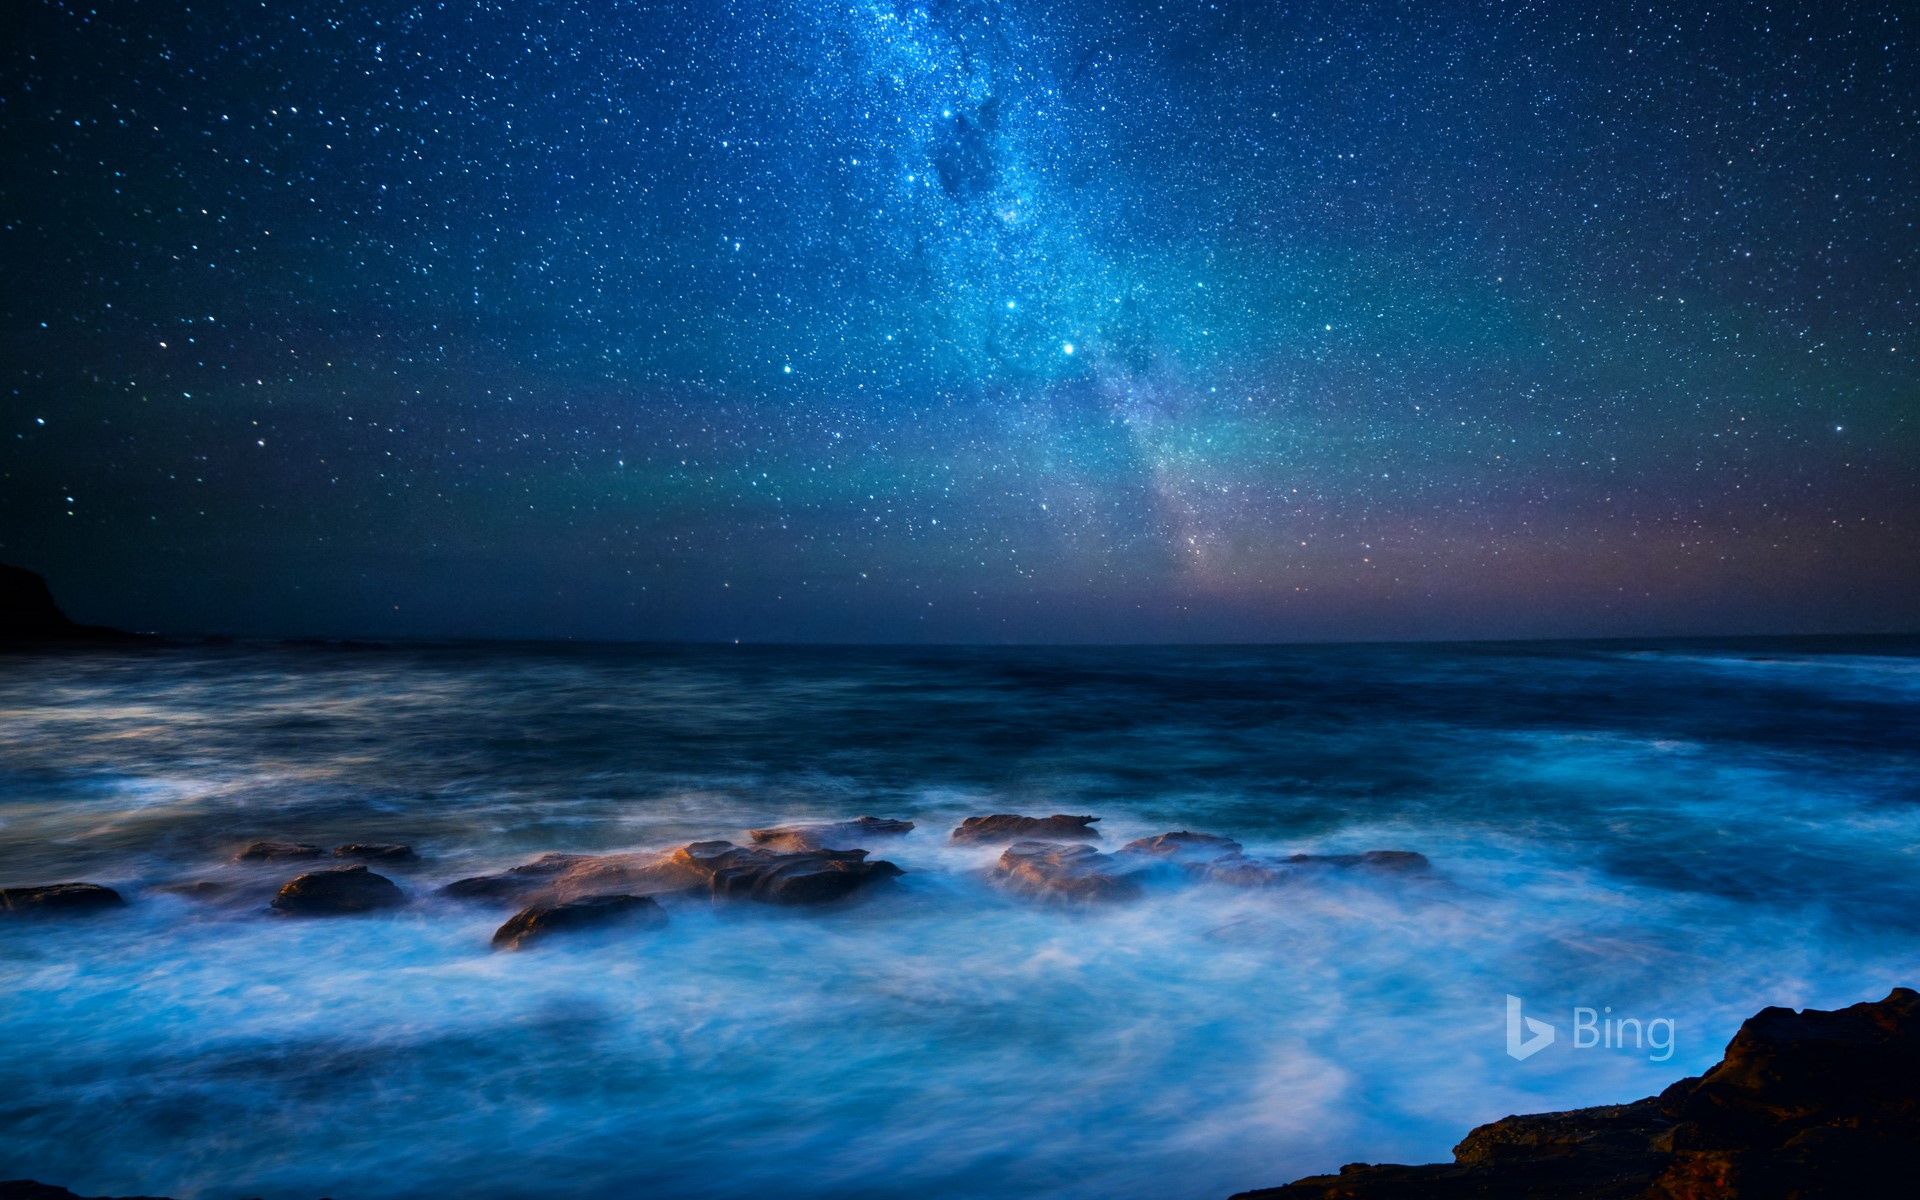 View of the Milky Way from the Great Ocean Road, Victoria, Australia (© idizimage/iStock/Getty Images Plus)